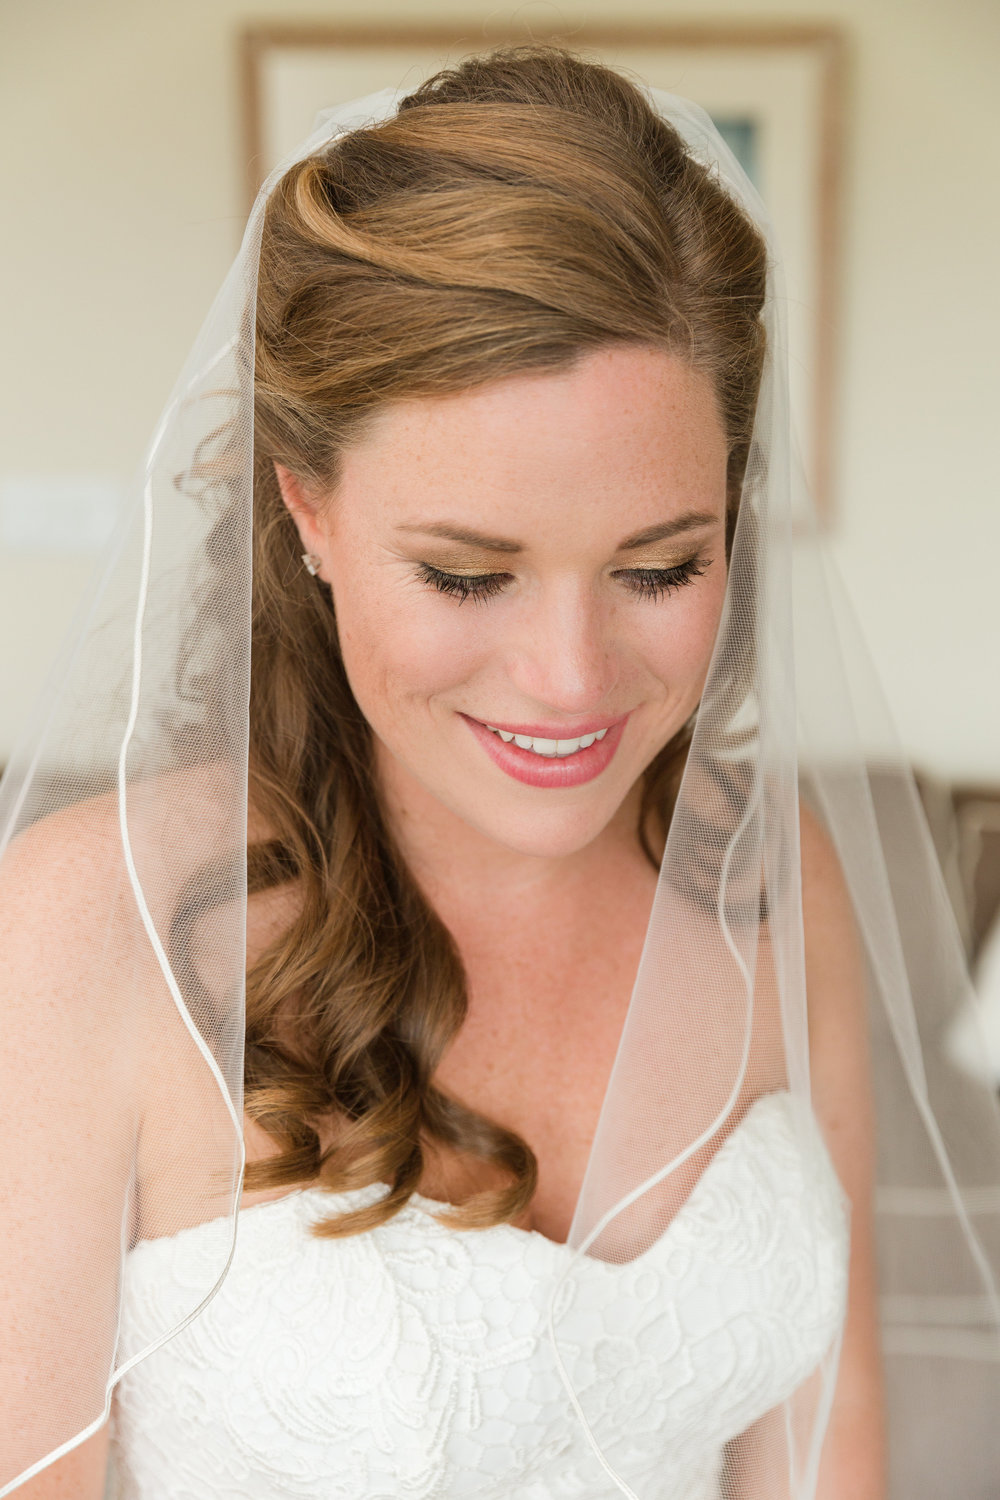 kaitlin_john_wedding-166.jpg